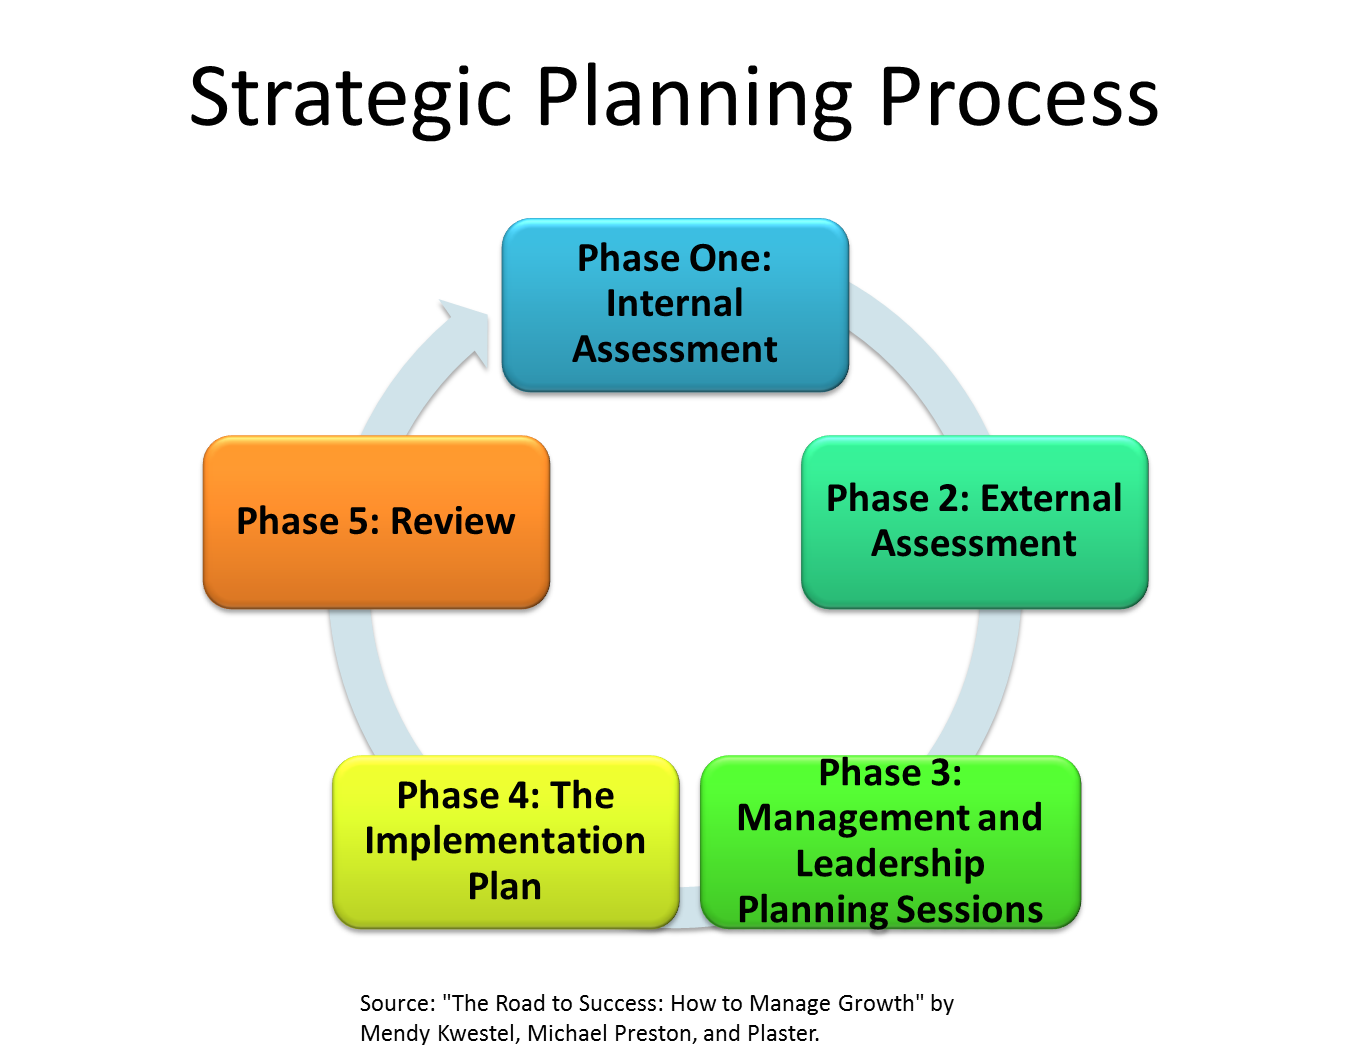 stretegic planning Strategic planning is an organization's process of defining its strategy, or direction, and making decisions on allocating its resources to pursue this strategy.